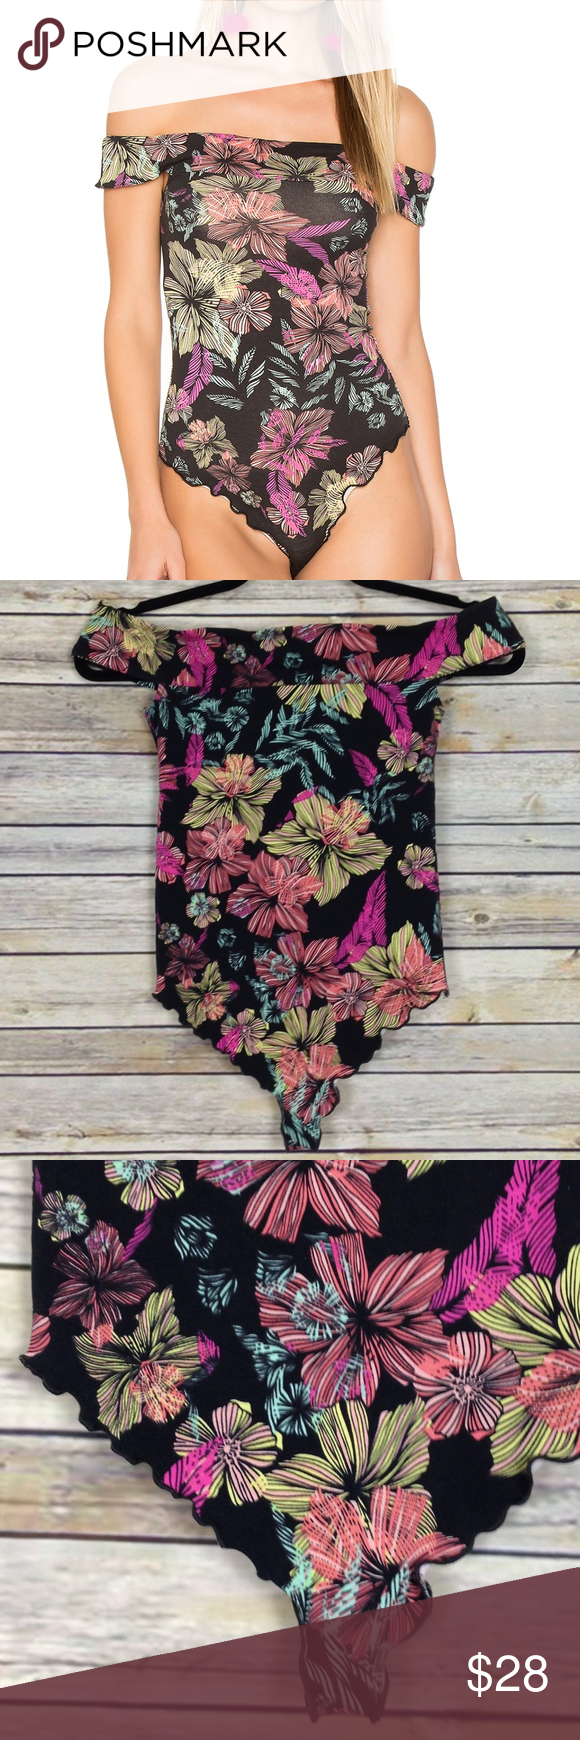 9b247e6d95d NEW Free People Off the Shoulder Printed Bodysuit Brand new with tags Free  People off-shoulder floral printed bodysuit in black, pink, blue, and  yellow.